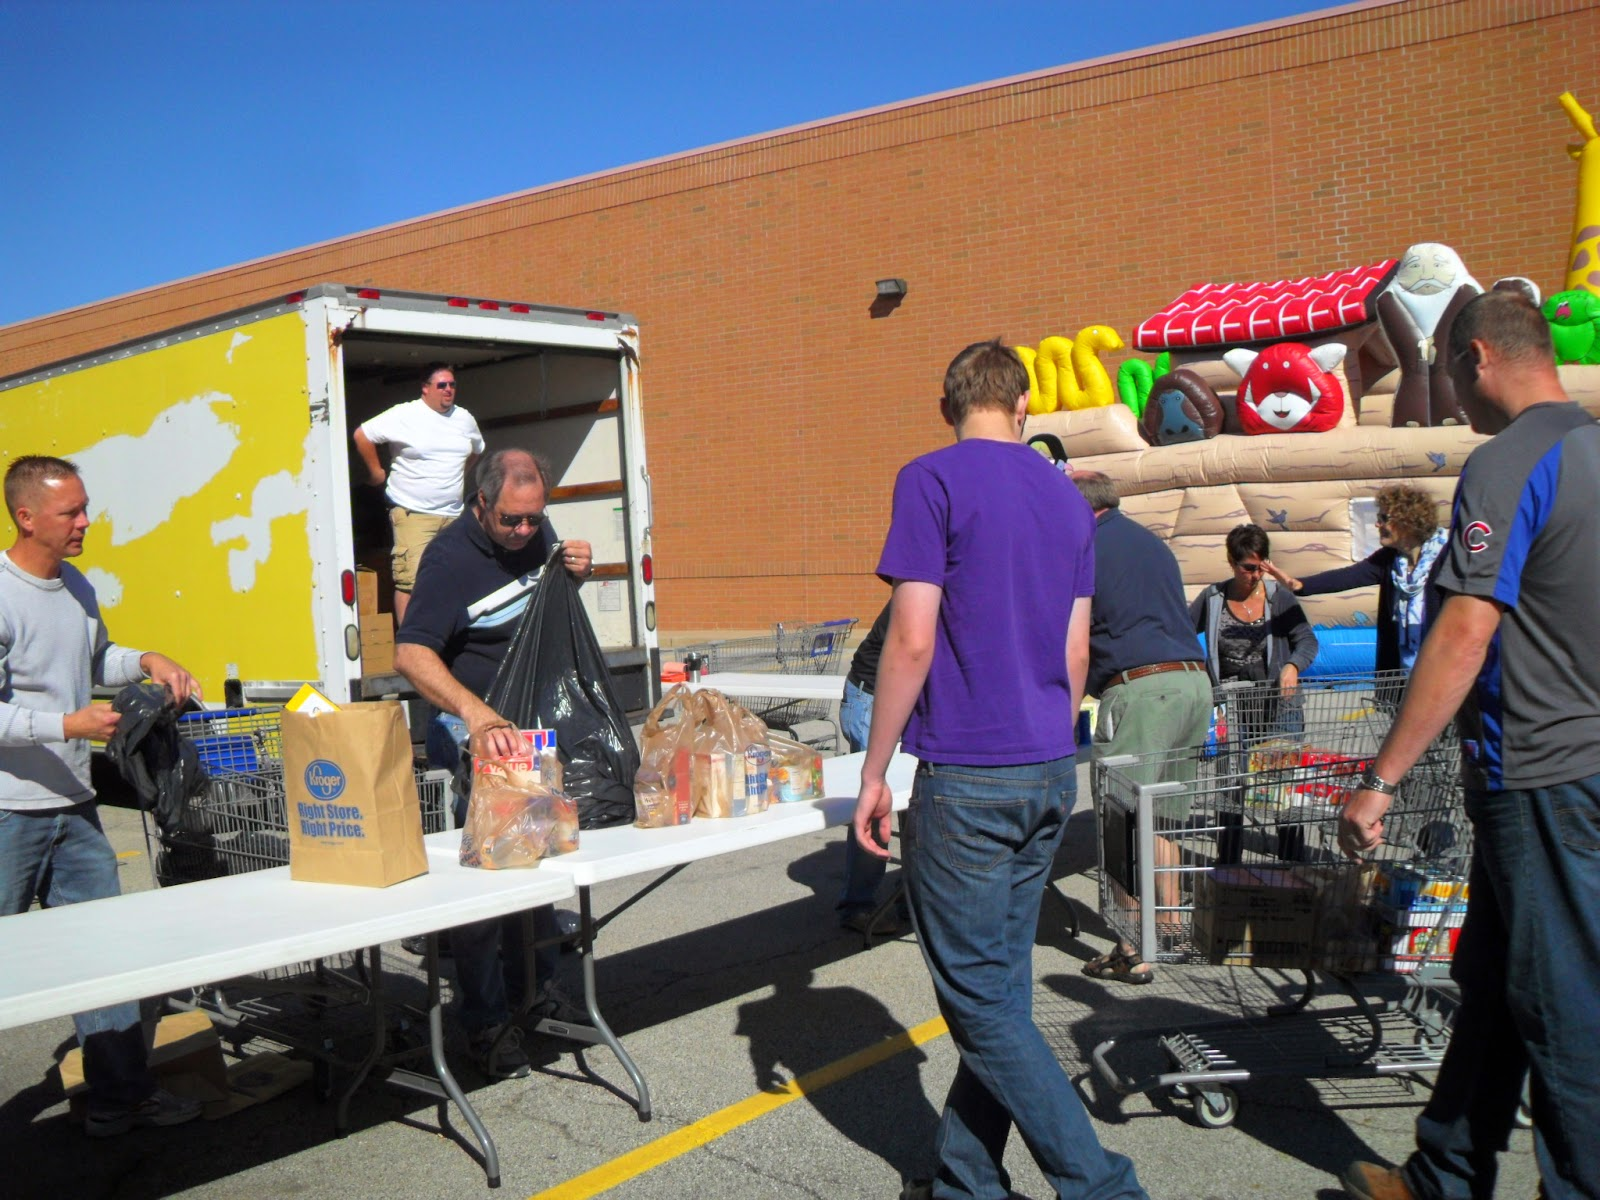 Volunteer at the Central Illinois Food 4All Food Drive on September 20th!